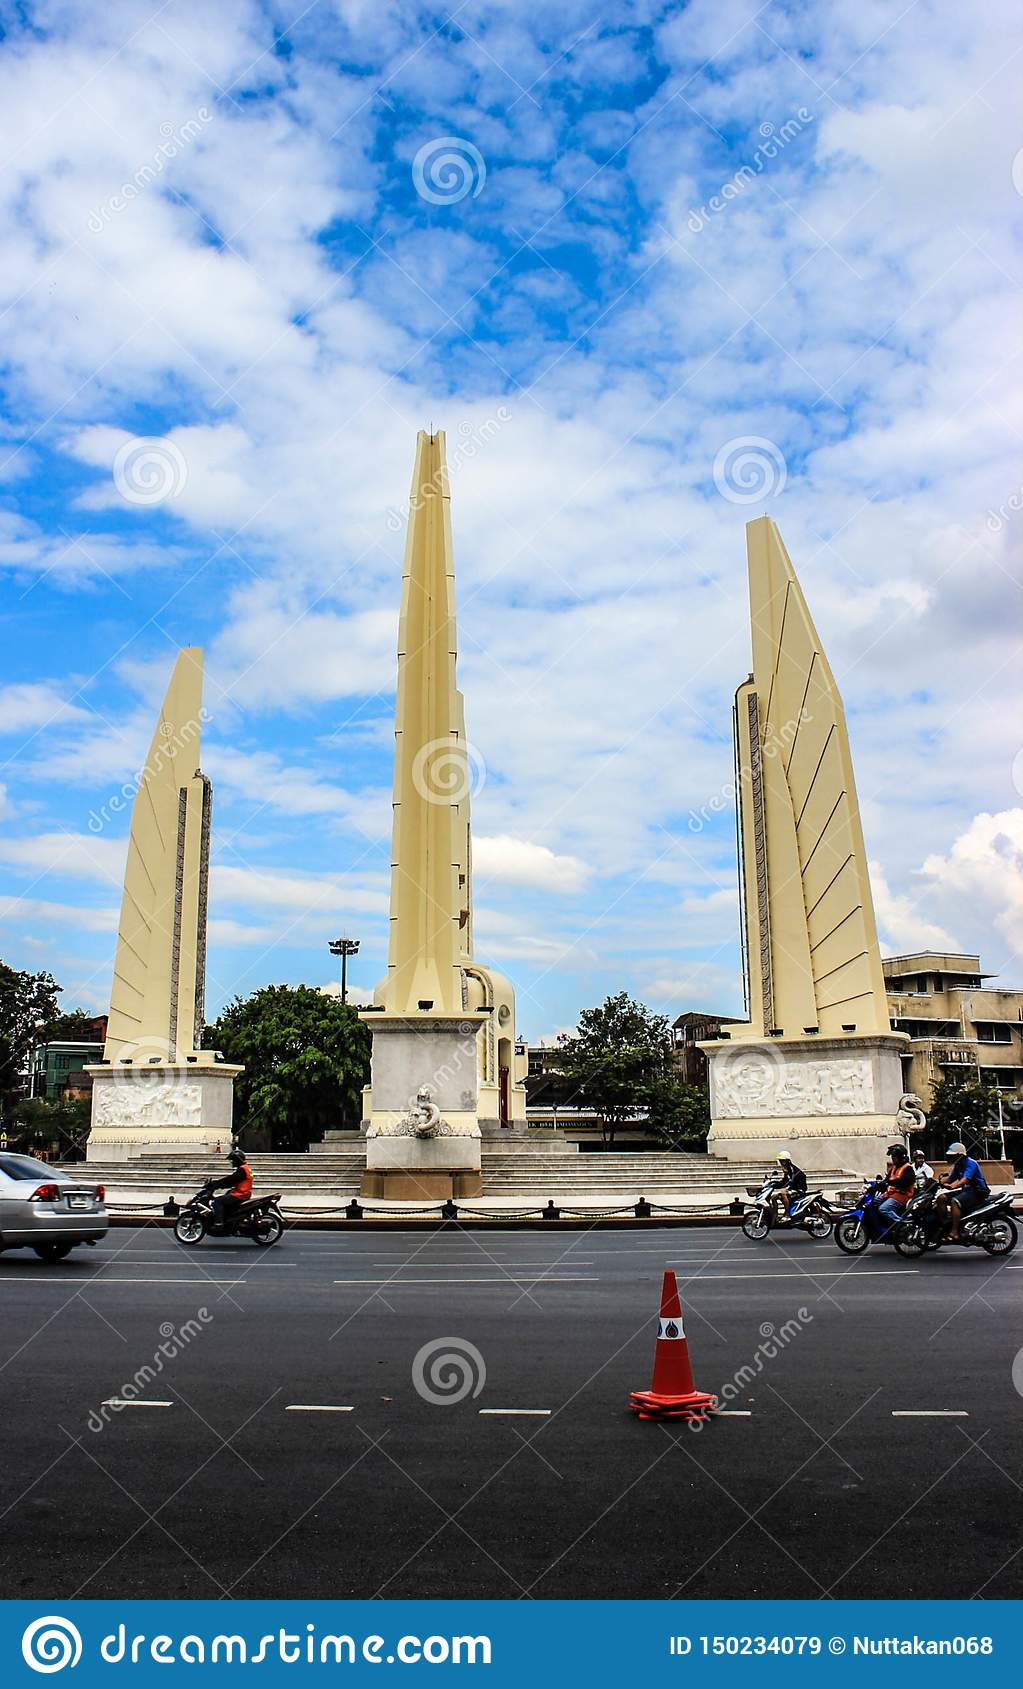 Democracy monuments in Thailand.